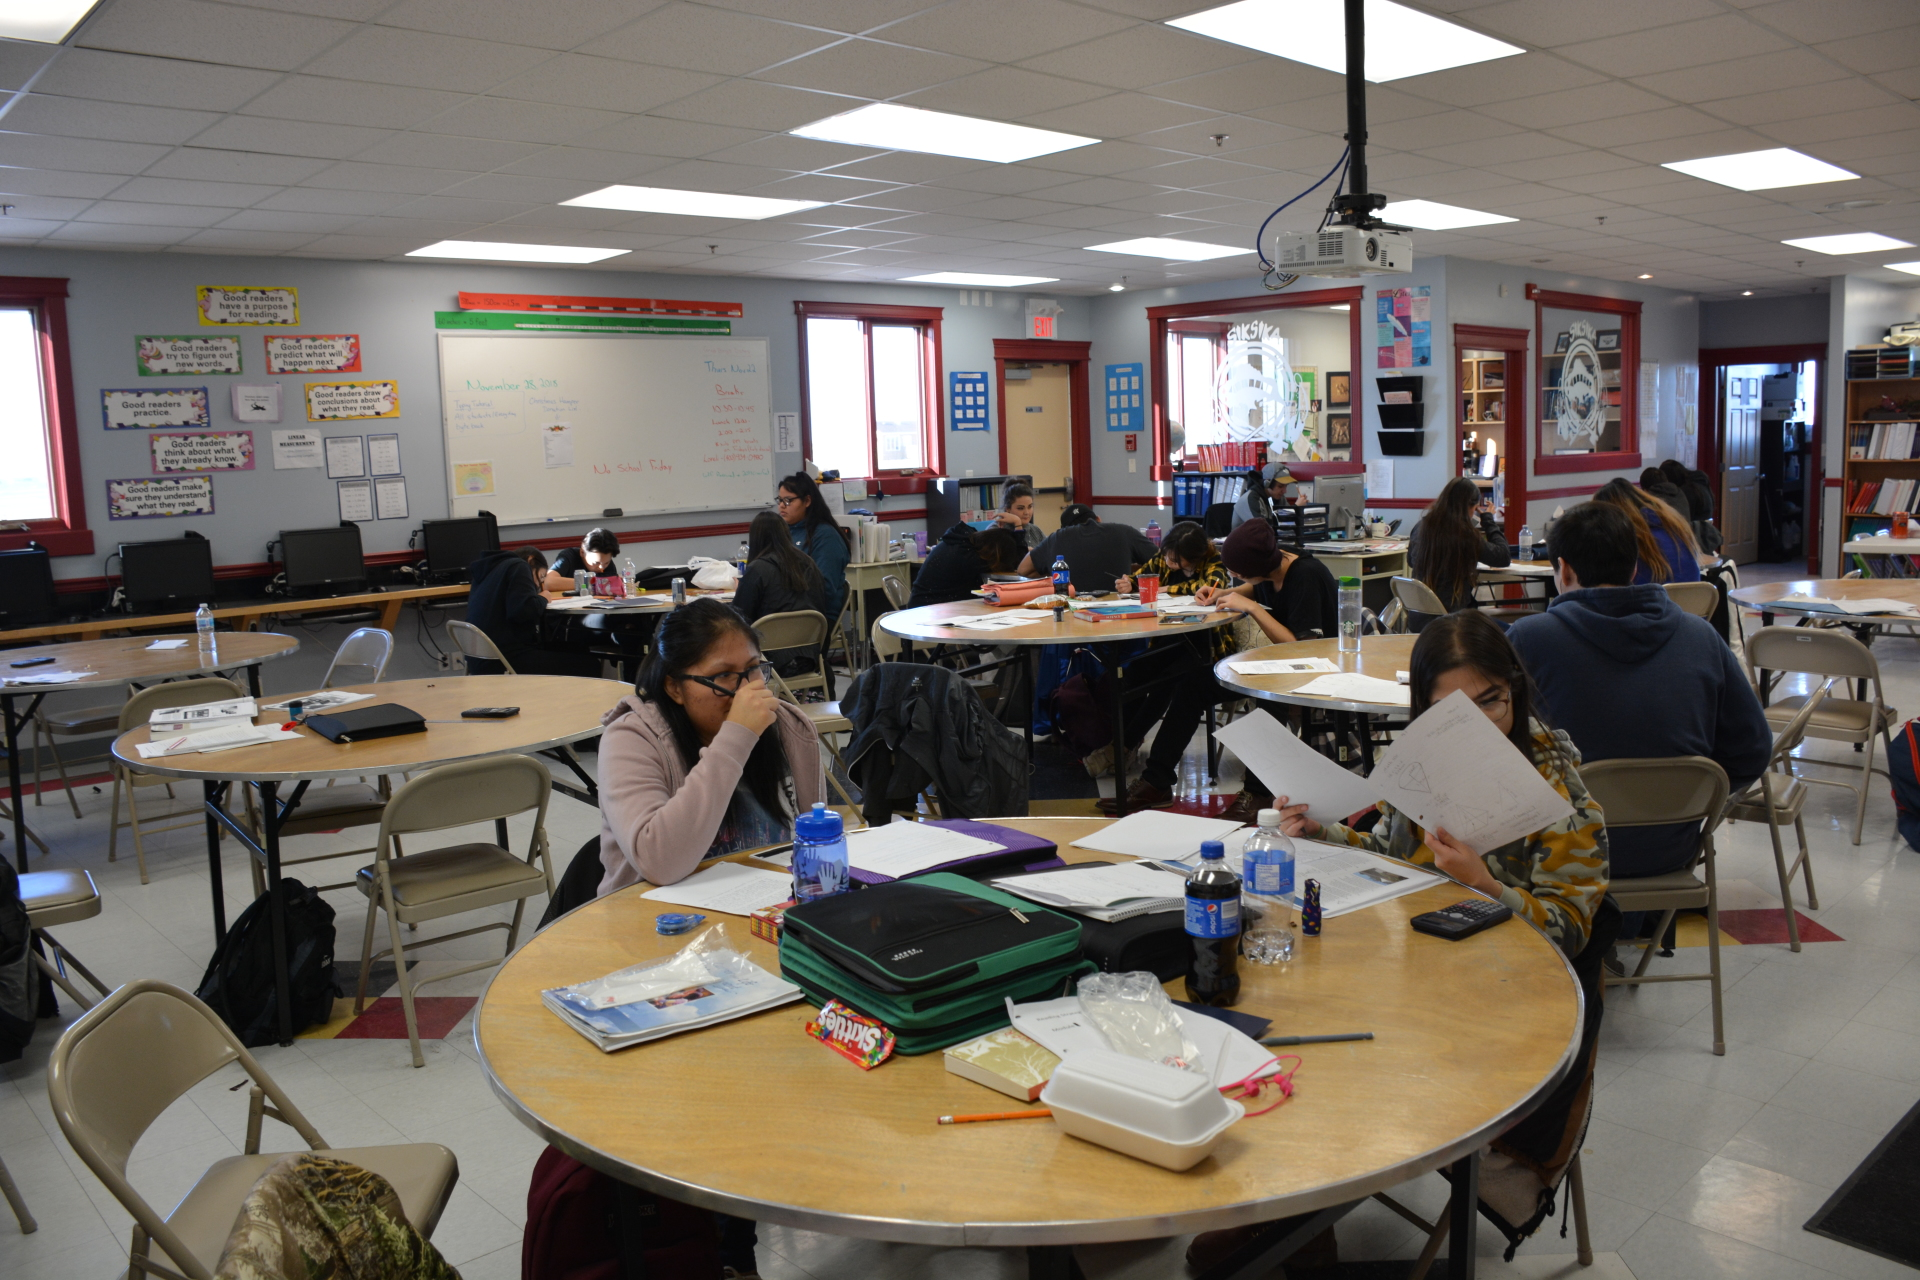 SOS students engaged in assignments